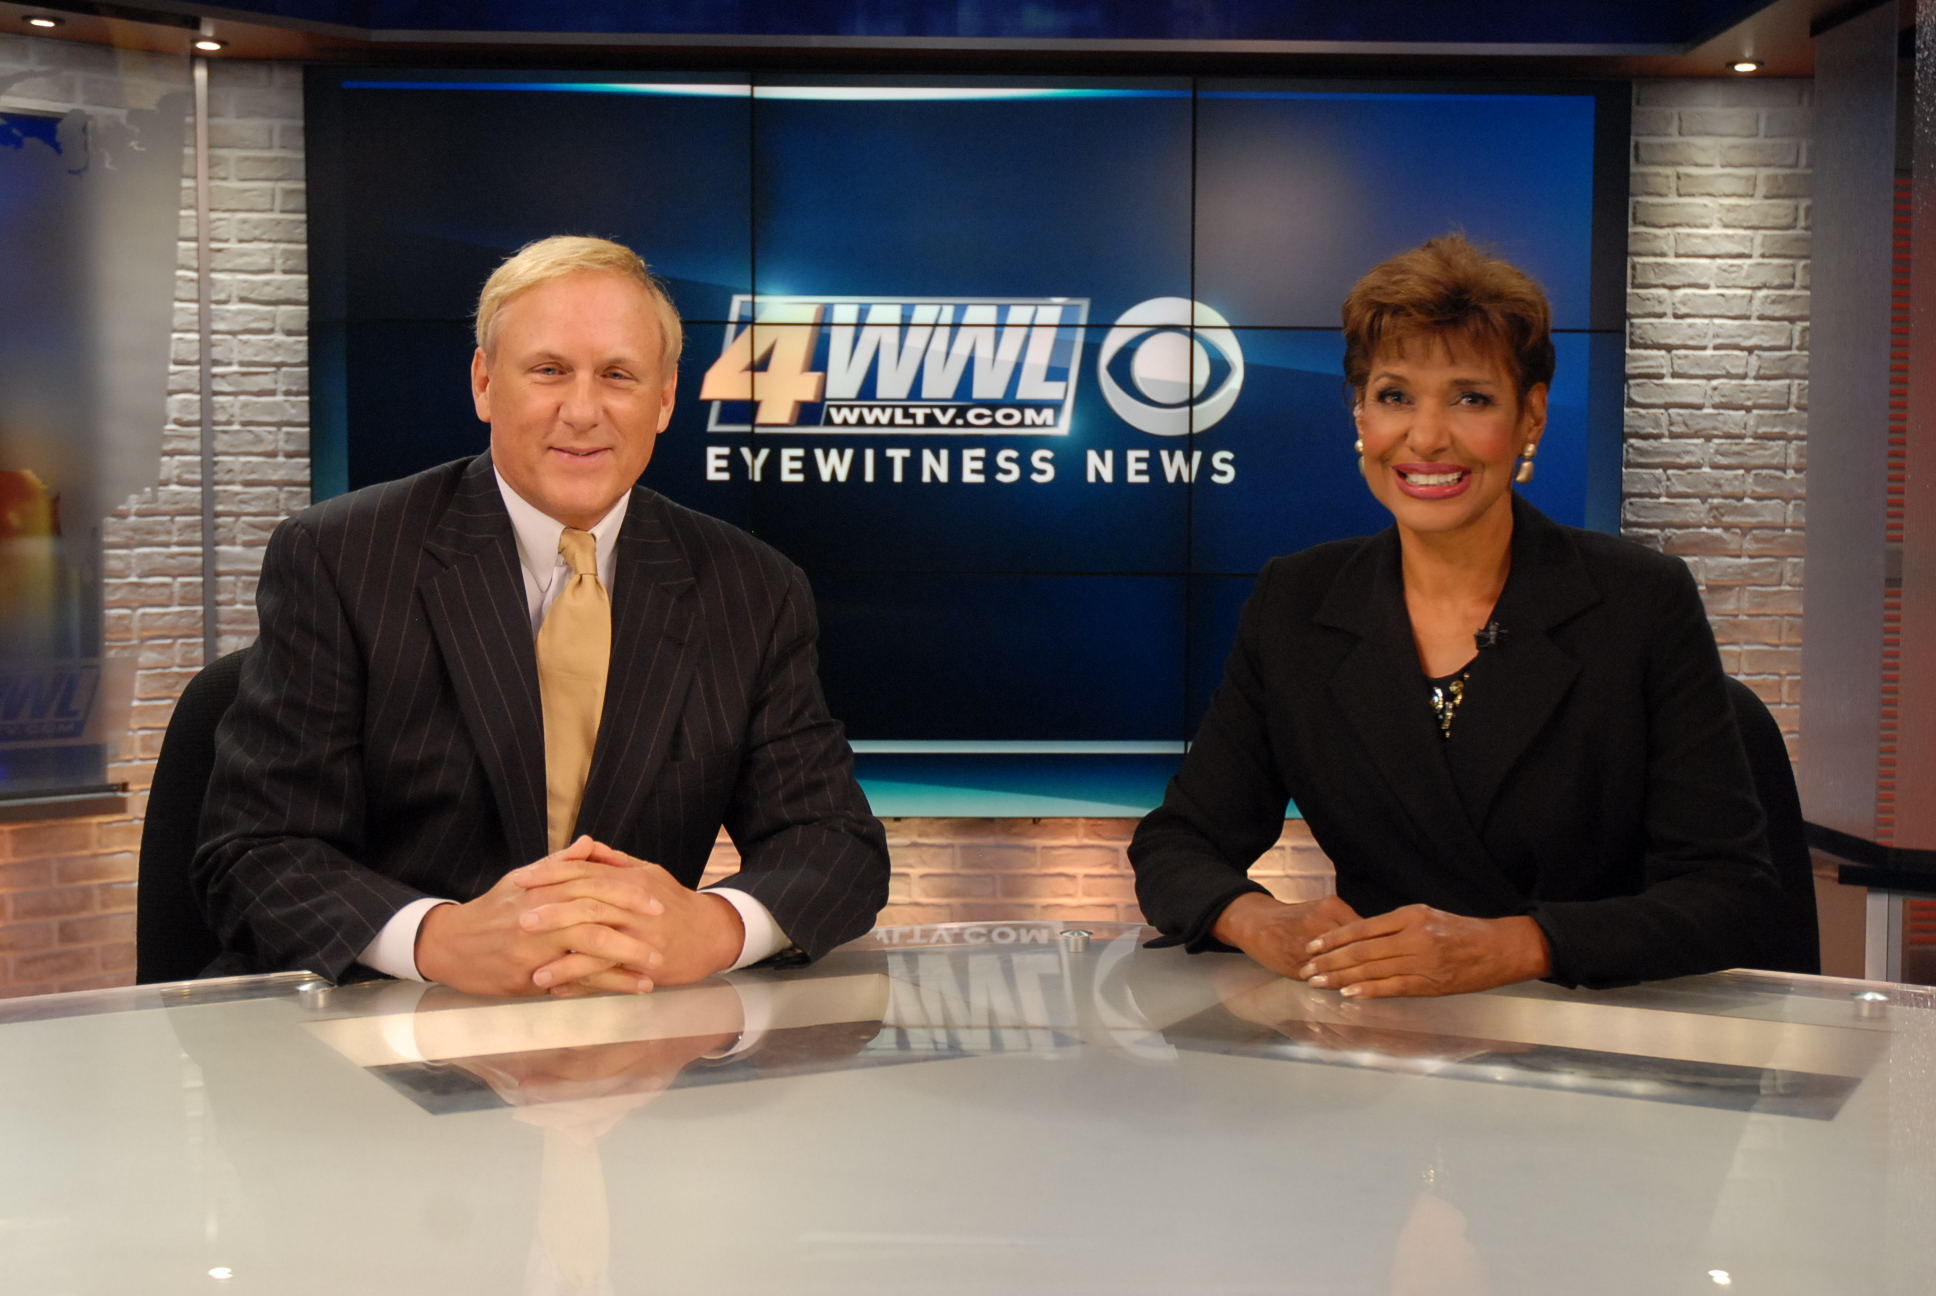 Morning News from 7-9 a.m. moves to WUPL-TV